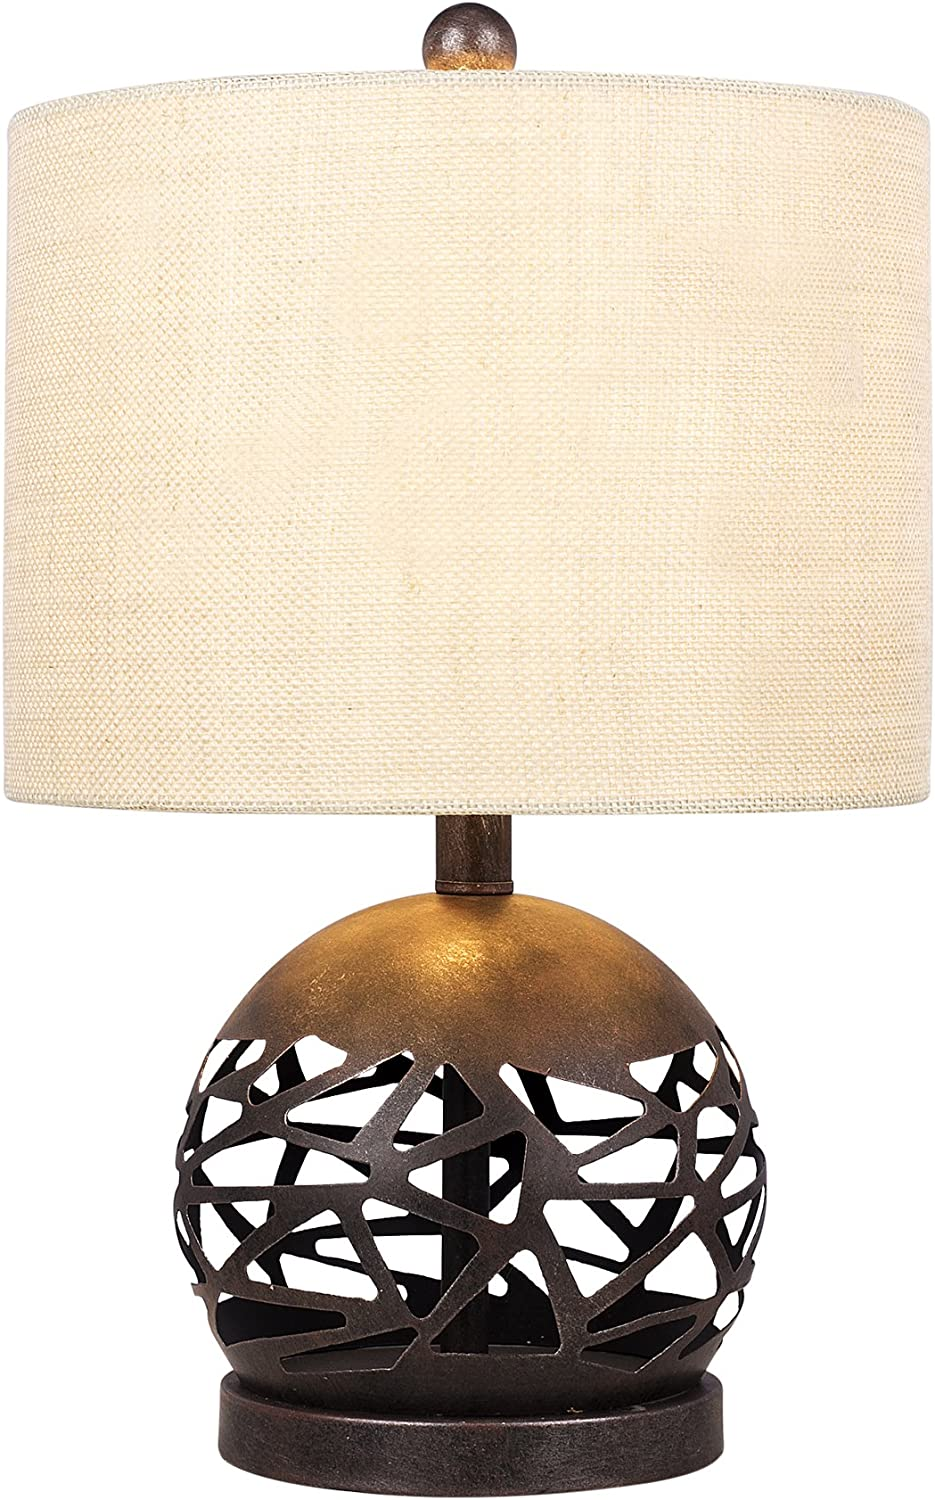 Cory Martin W-1544 Lamp, 19.5 , Brown